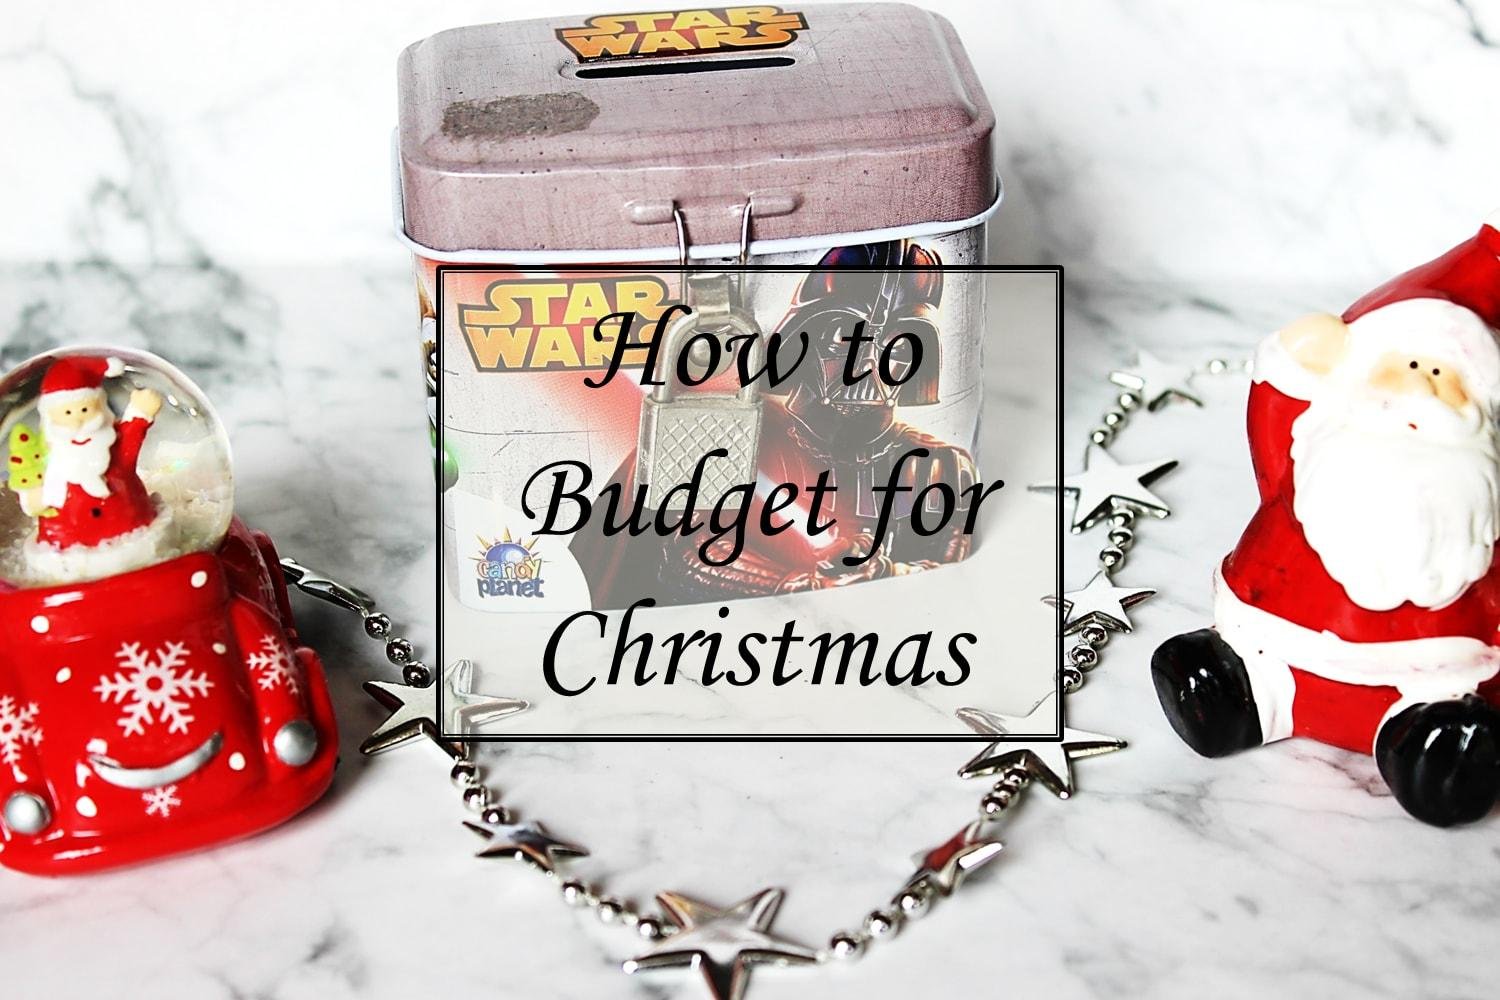 How To Budget For Christmas Presents